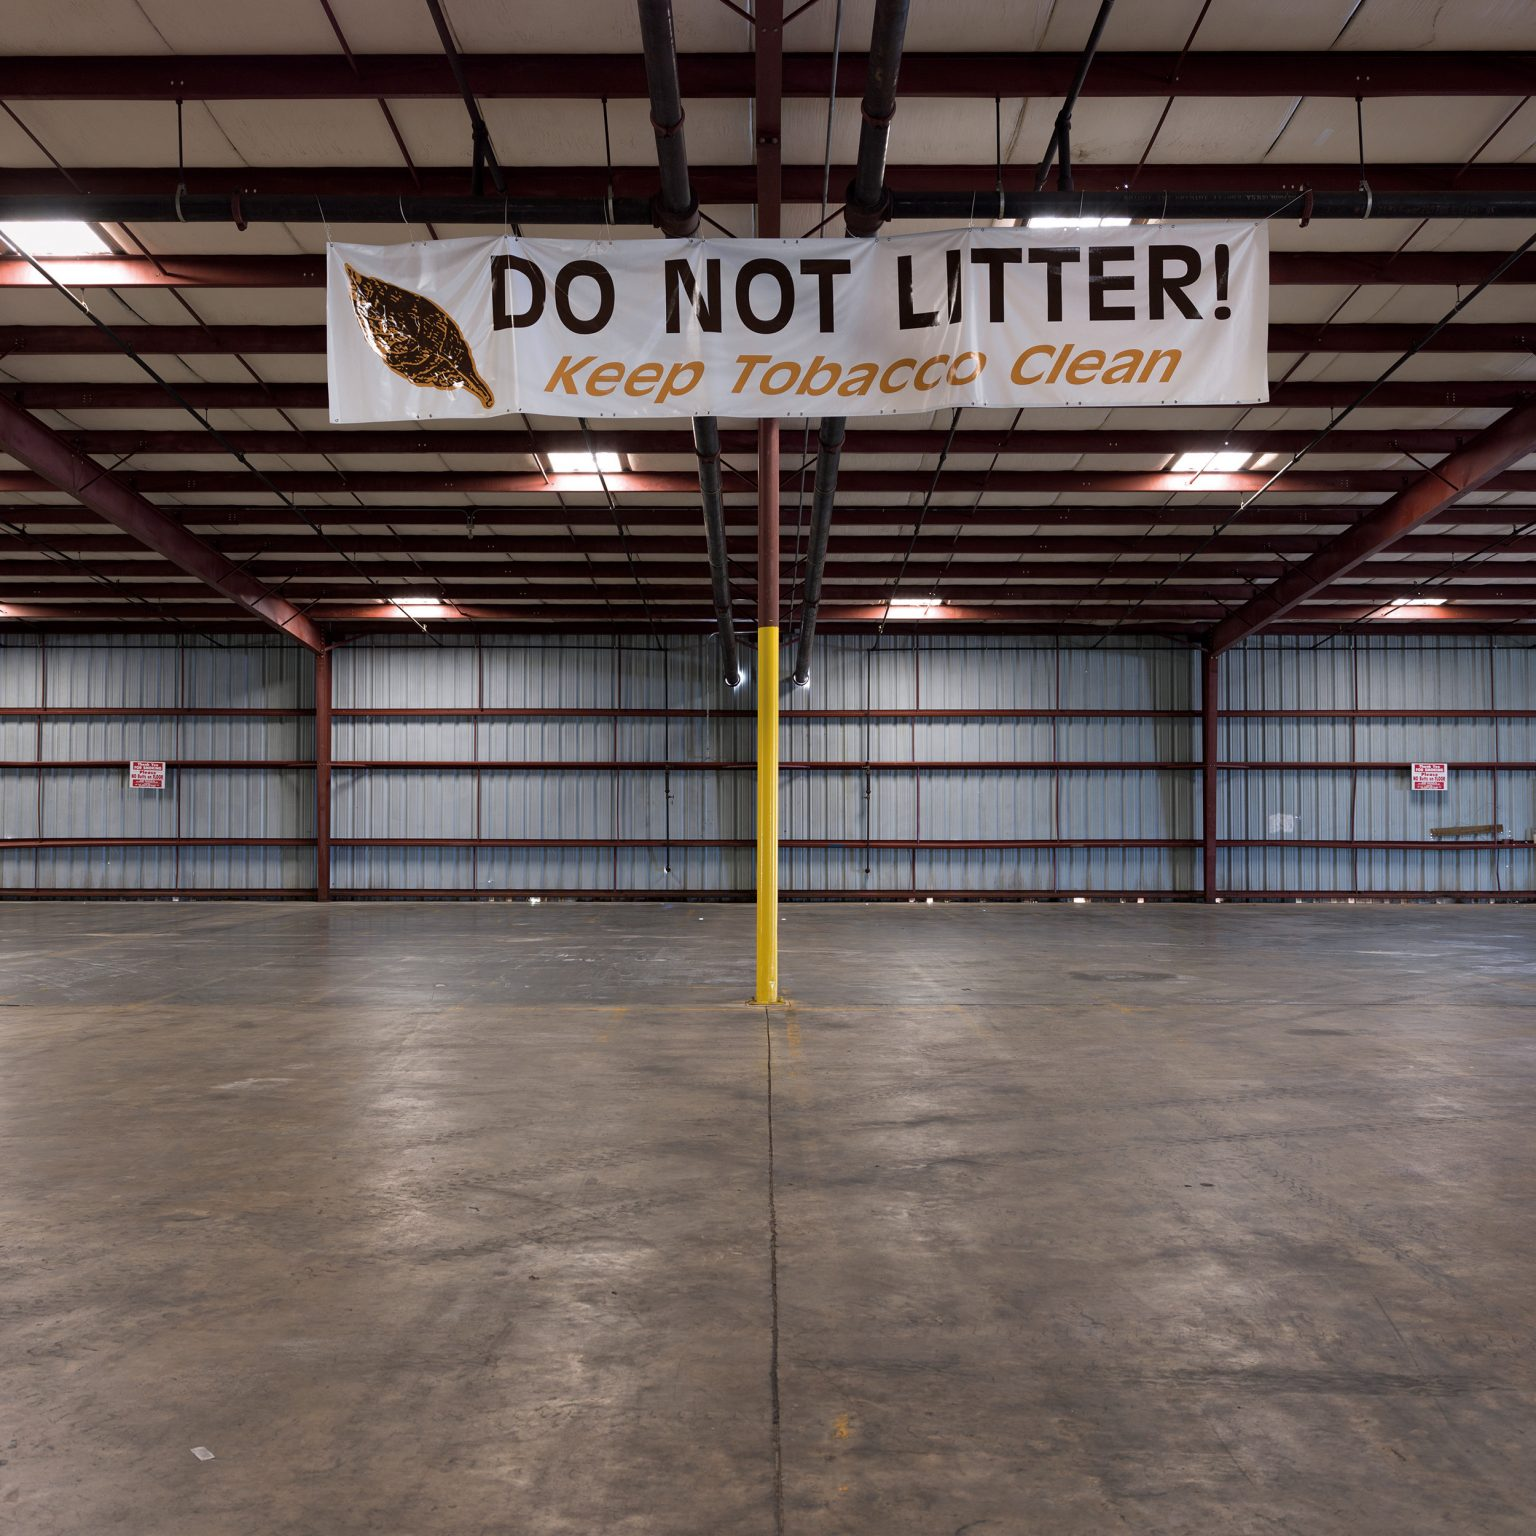 """Wilson, NC, USA. The preparation of a new tobacco auction warehouse in Wilson. In 2000, with the tobacco buyout, farmers shifted from the quota system to direct contracts with cigarette companies or tobacco dealers. However, in 2007-2008, as prices for tobacco decreased caused by growing competition with Asian producers, farmers started looking for other ways to sell their tobacco, and a few auction plans opened again. In 2013, in Wilson only, two actions plans are operating. Mostly, they buy """"bad tobacco"""", which Philip Morris and other major players do not want to purchase, but which is ideal for small, cheap cigarette companies. Farmers also like the direct contact with the owners, and their prices are good, about 2 USD per pound, paying directly on the spot."""